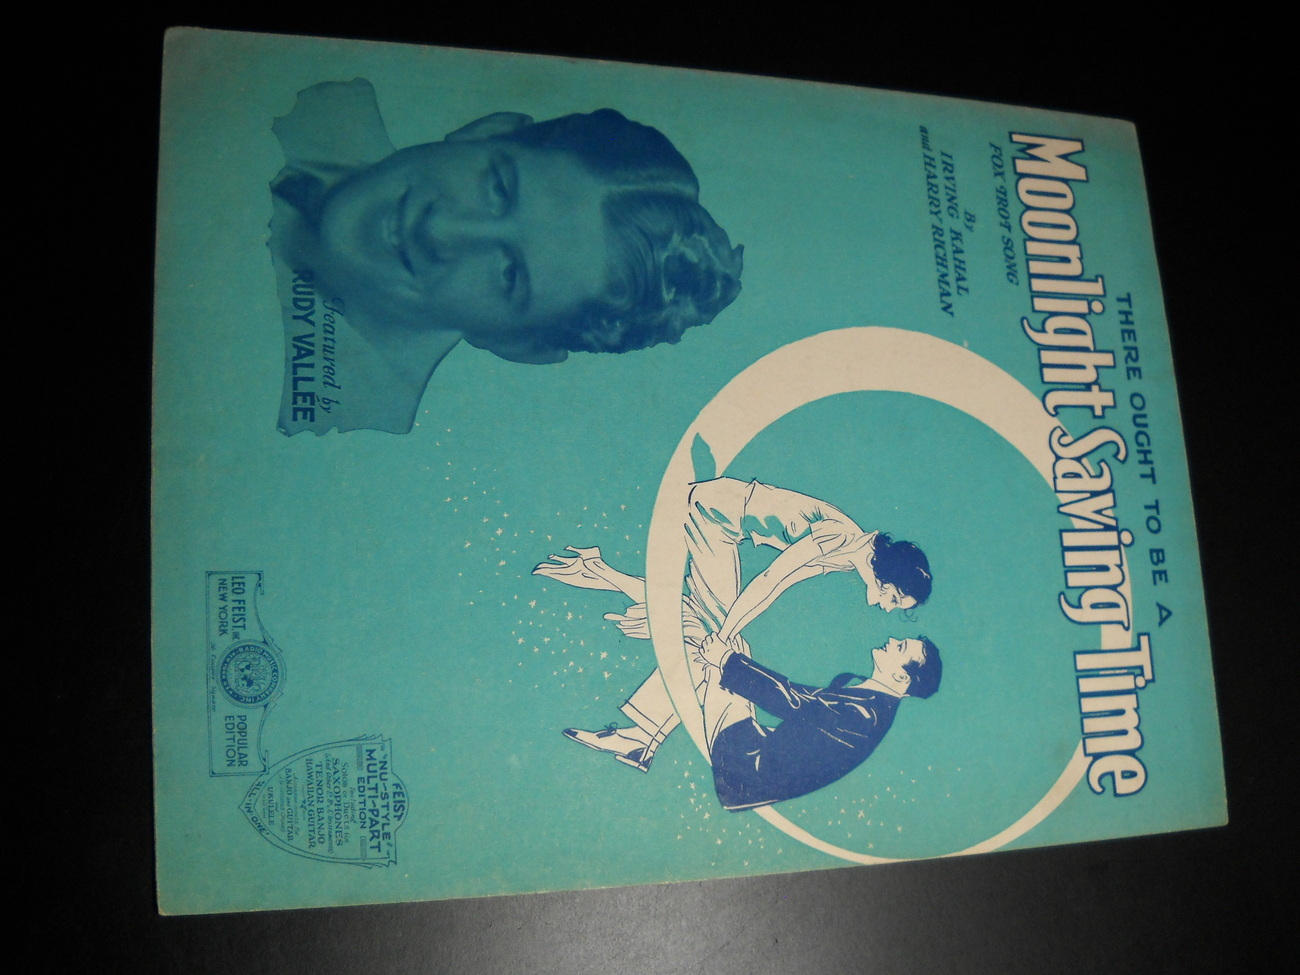 Sheet_music_moonlight_saving_time_rudy_vallee_kahal_richman_1931_leo_feist_01